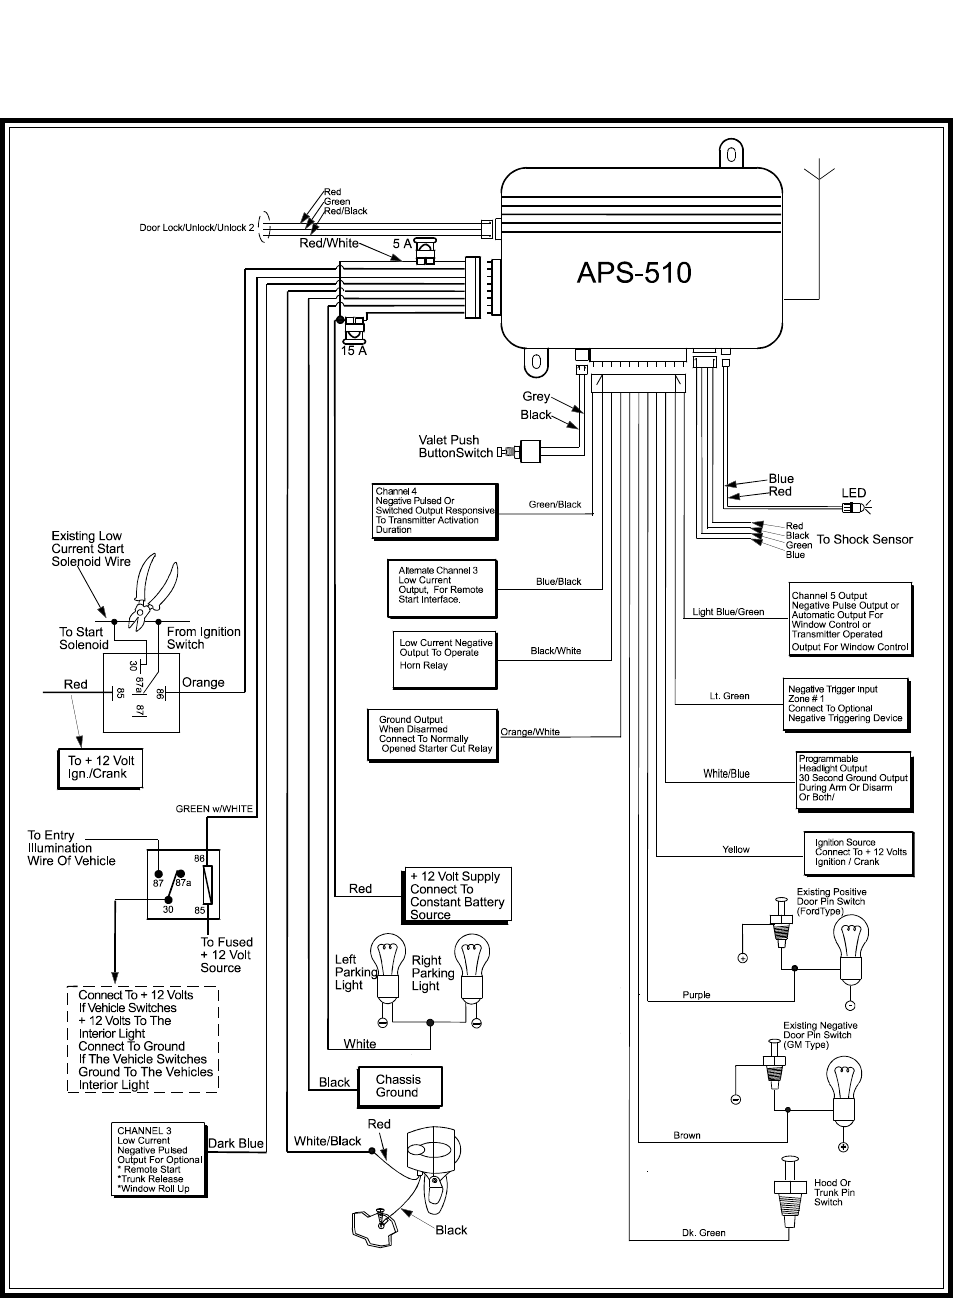 063ed920 b917 4478 a8a8 016b55389332 bg8 page 8 of audiovox automobile alarm aps 510 user guide audiovox car alarm wiring diagram at gsmx.co